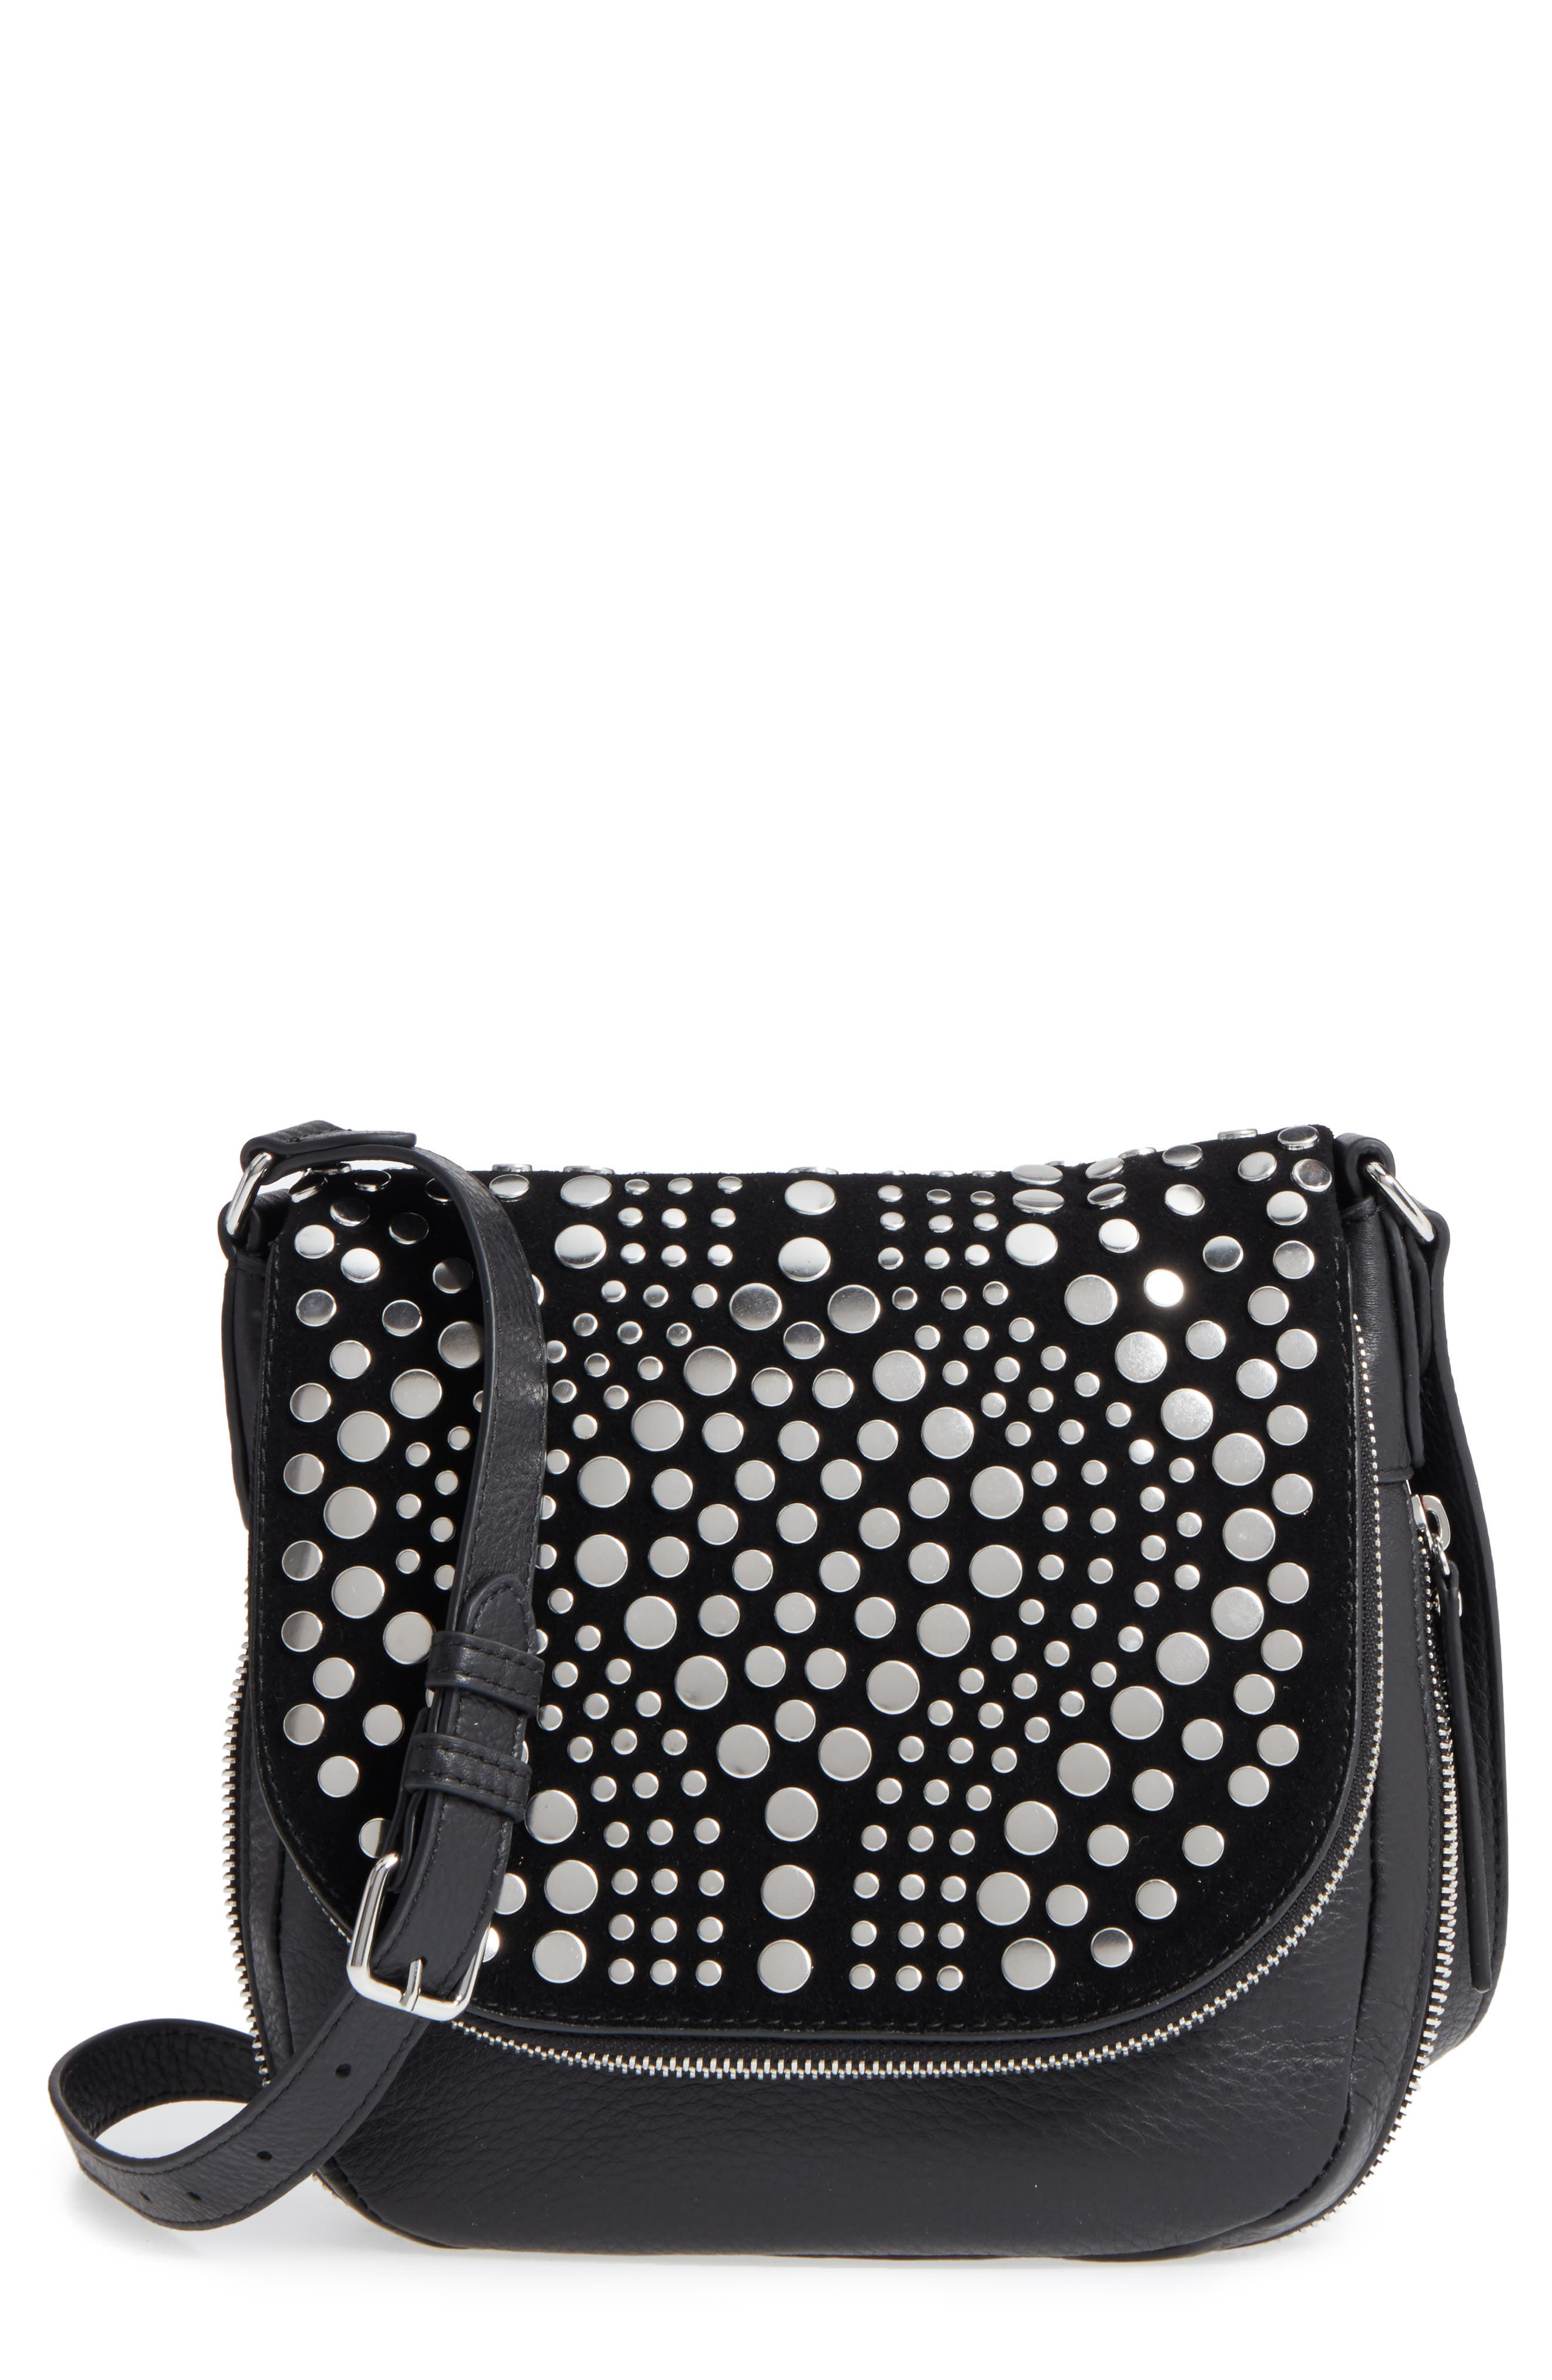 Bonny Studded Leather Crossbody Bag,                         Main,                         color, Nero